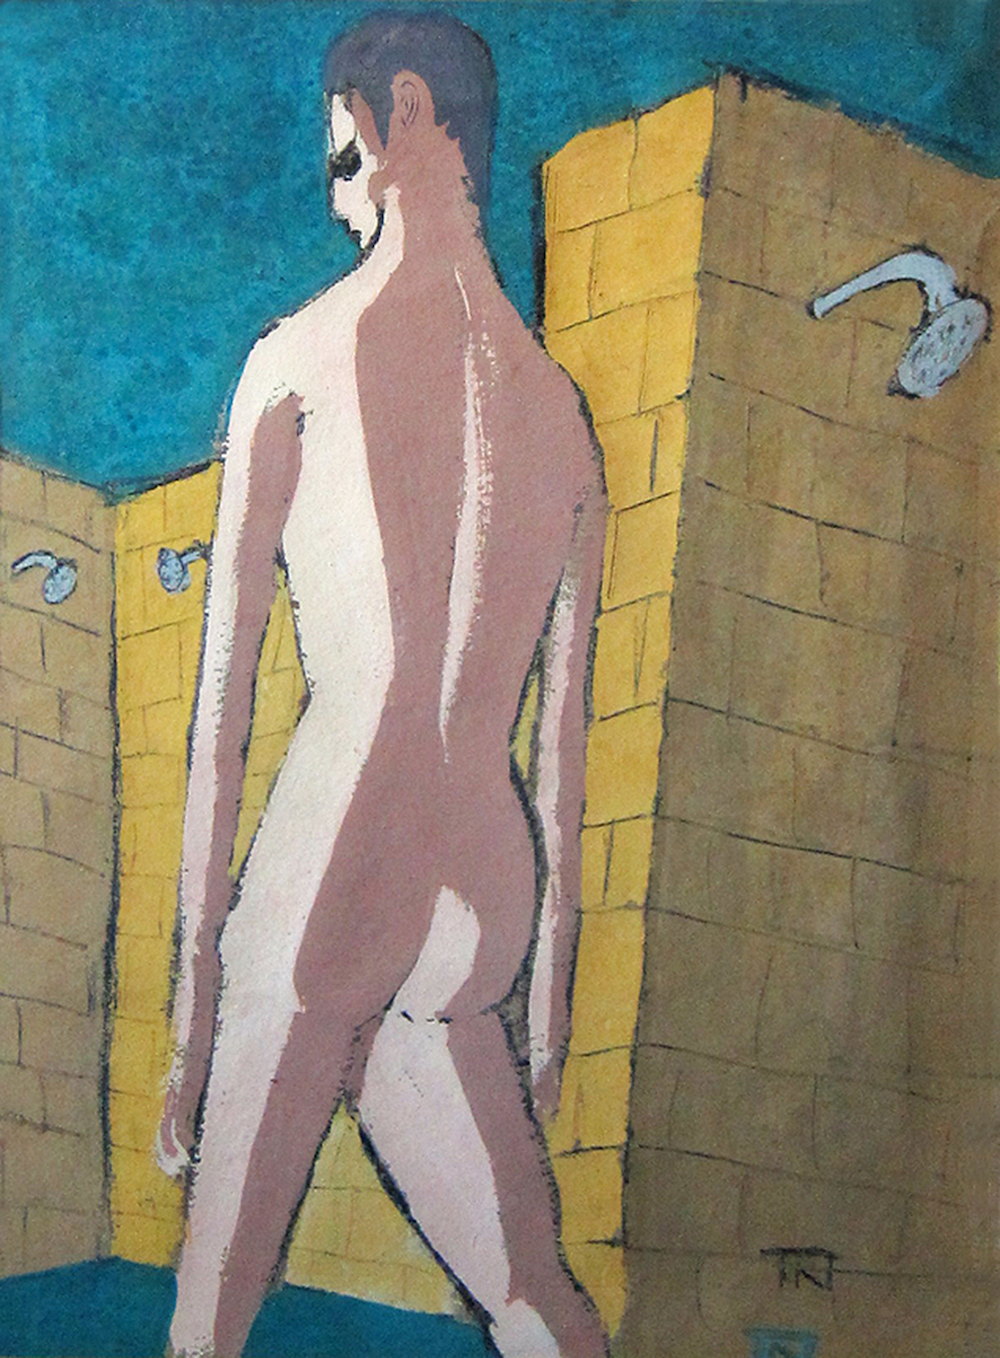 Theodore Newman, Shower Room, 1955